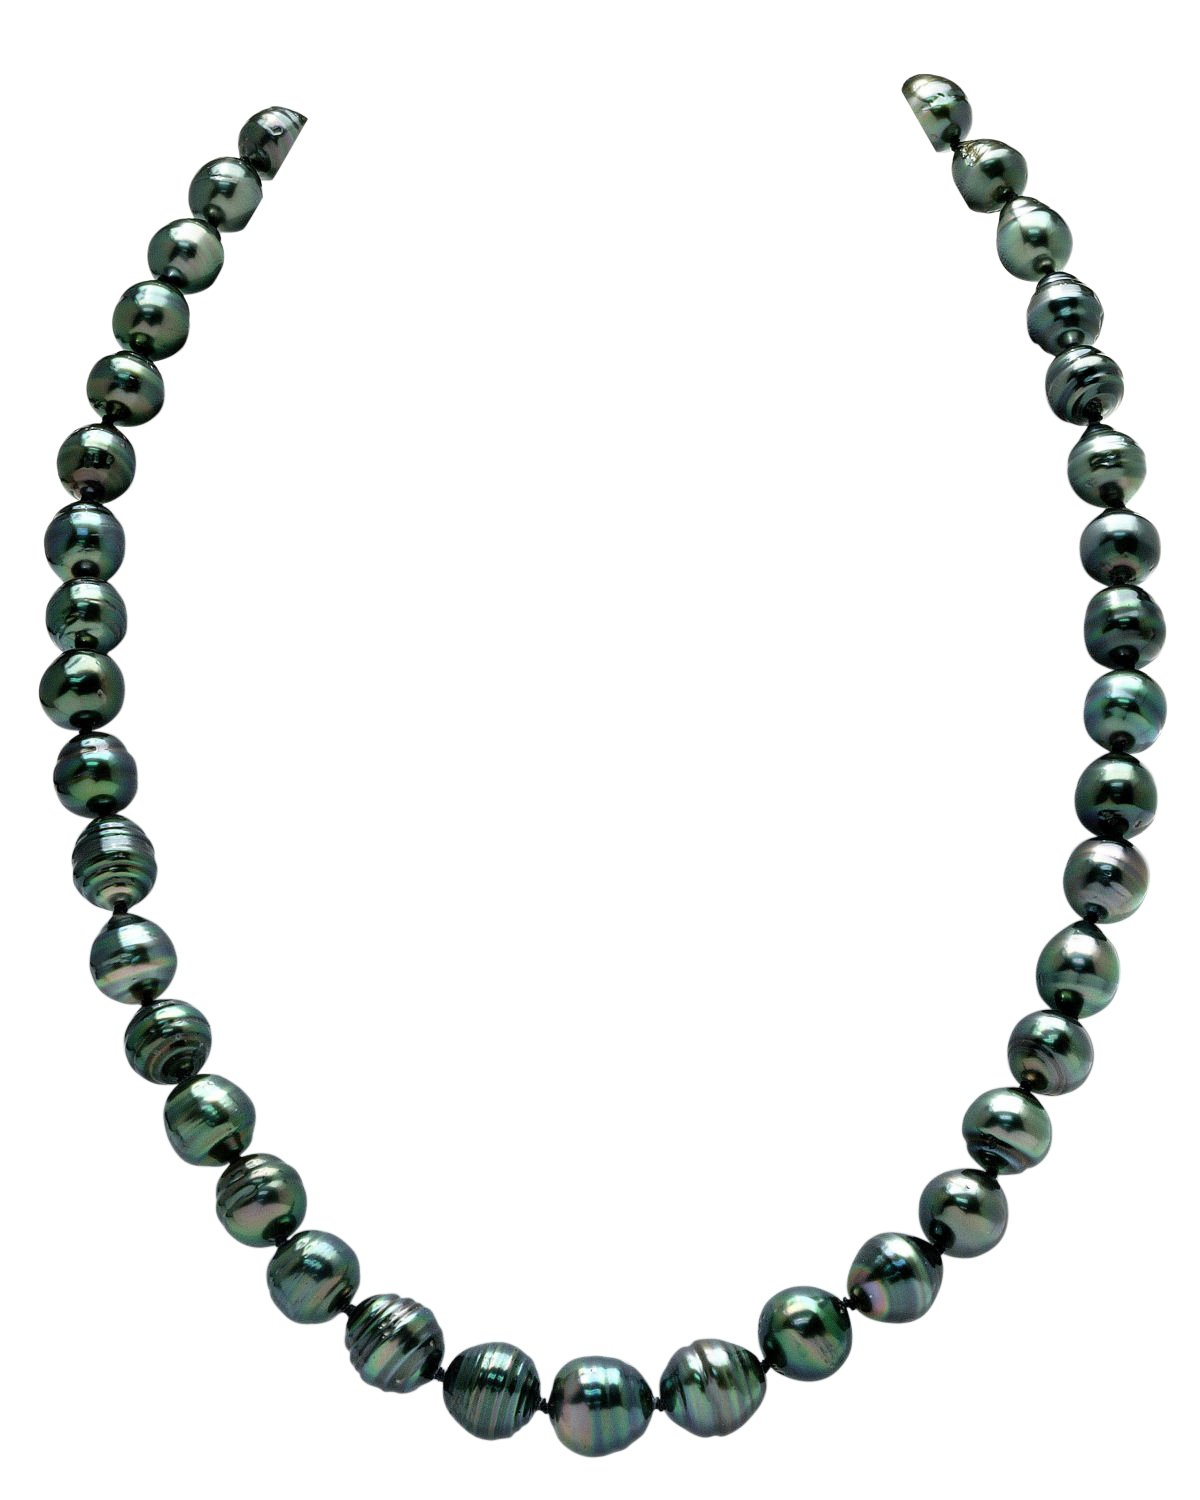 THE PEARL SOURCE 14K Gold 8-10mm Baroque Genuine Black Tahitian South Sea Cultured Pearl Necklace in 20'' Matinee Length for Women by The Pearl Source